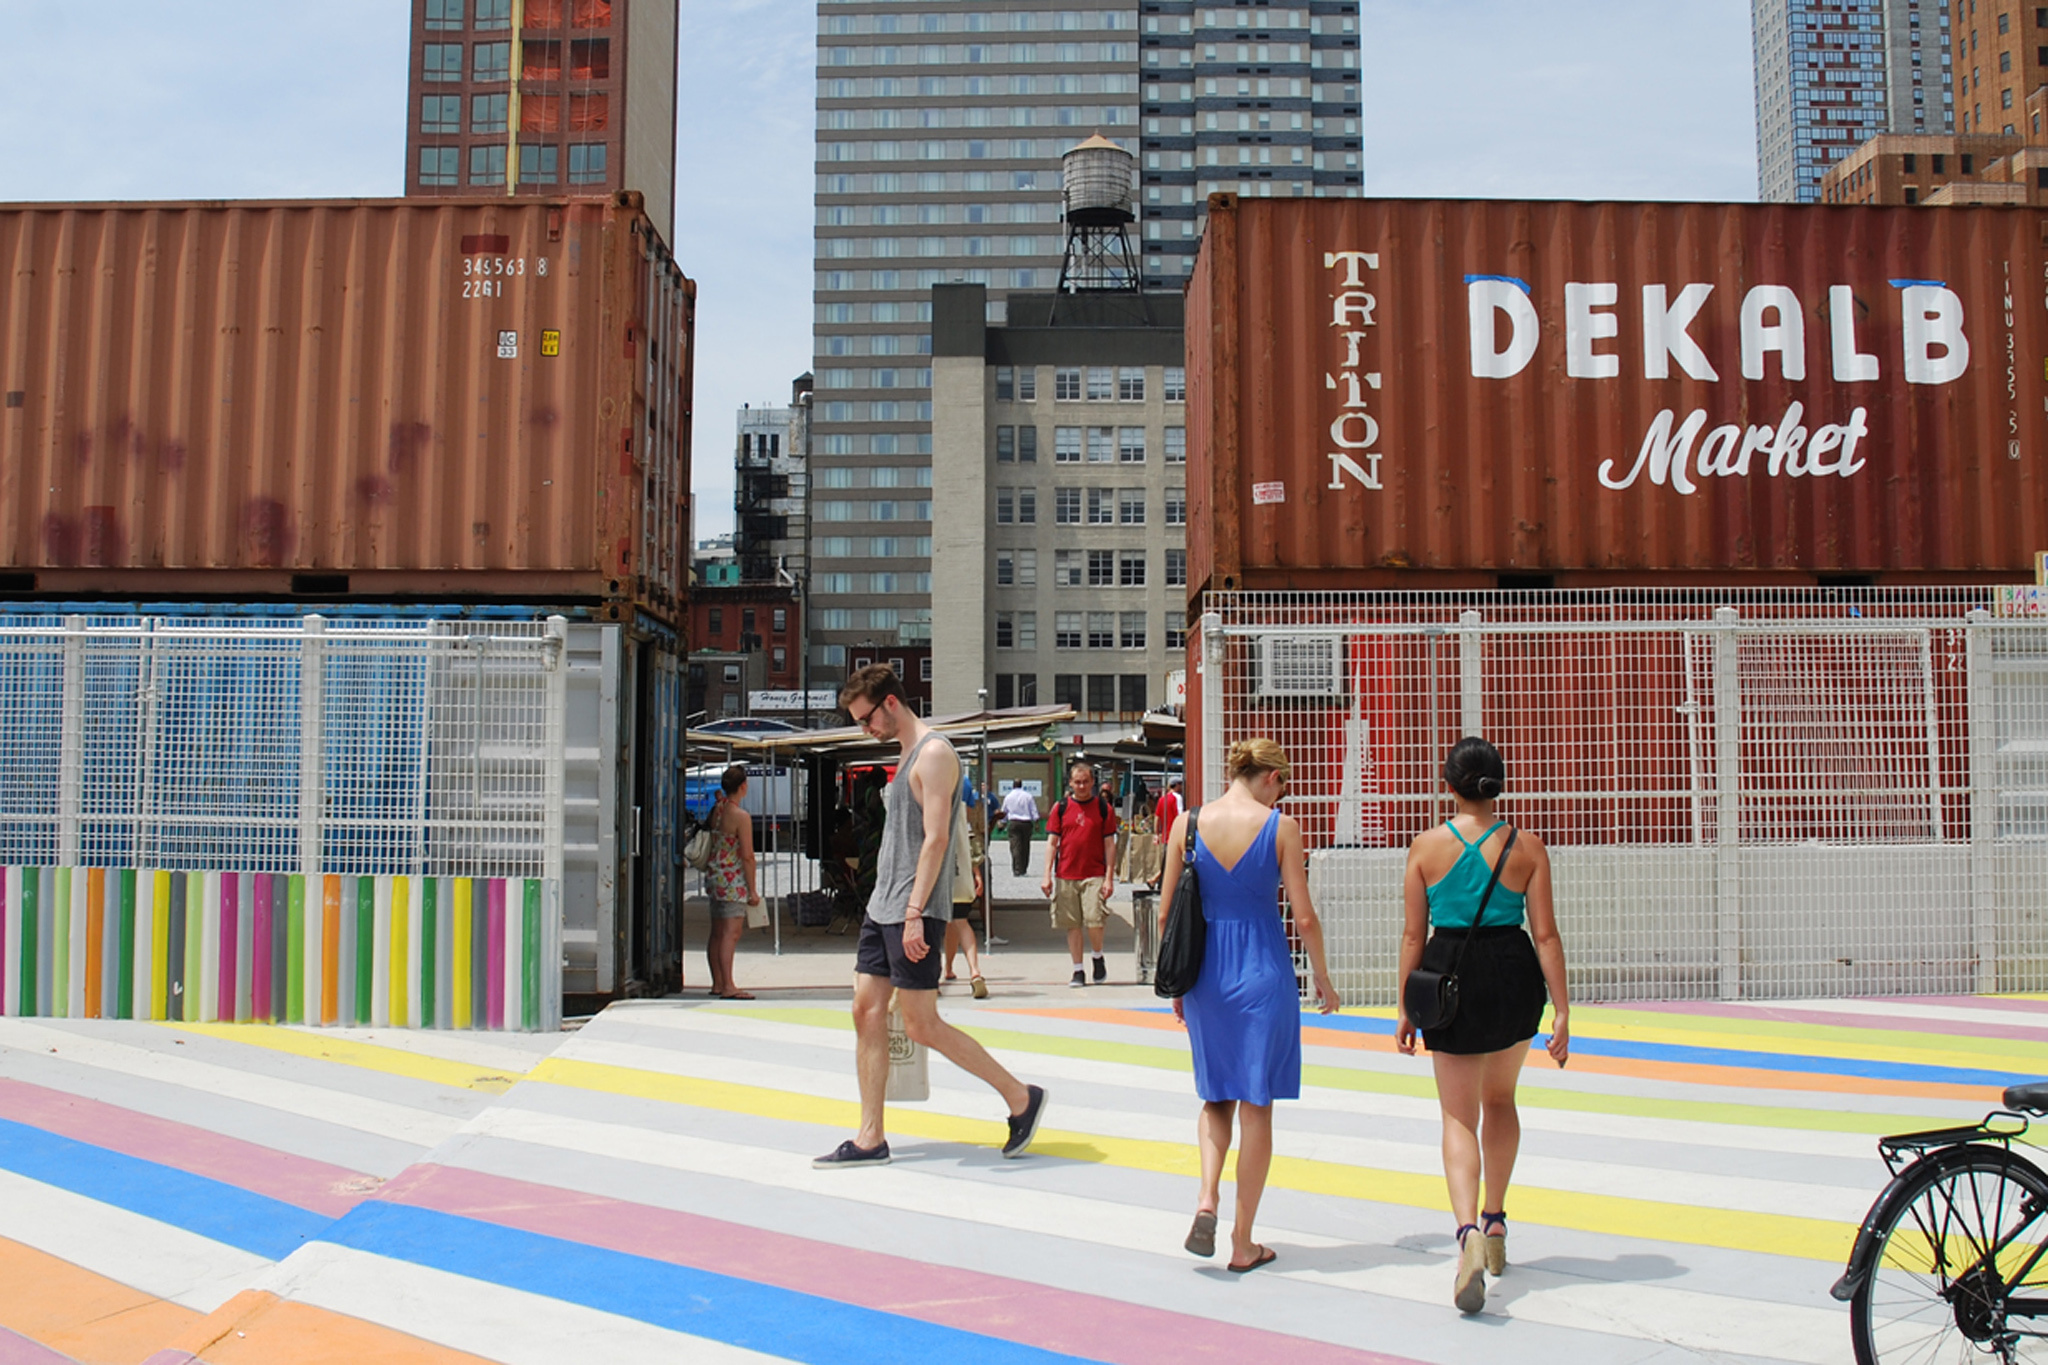 Check out Dekalb Market